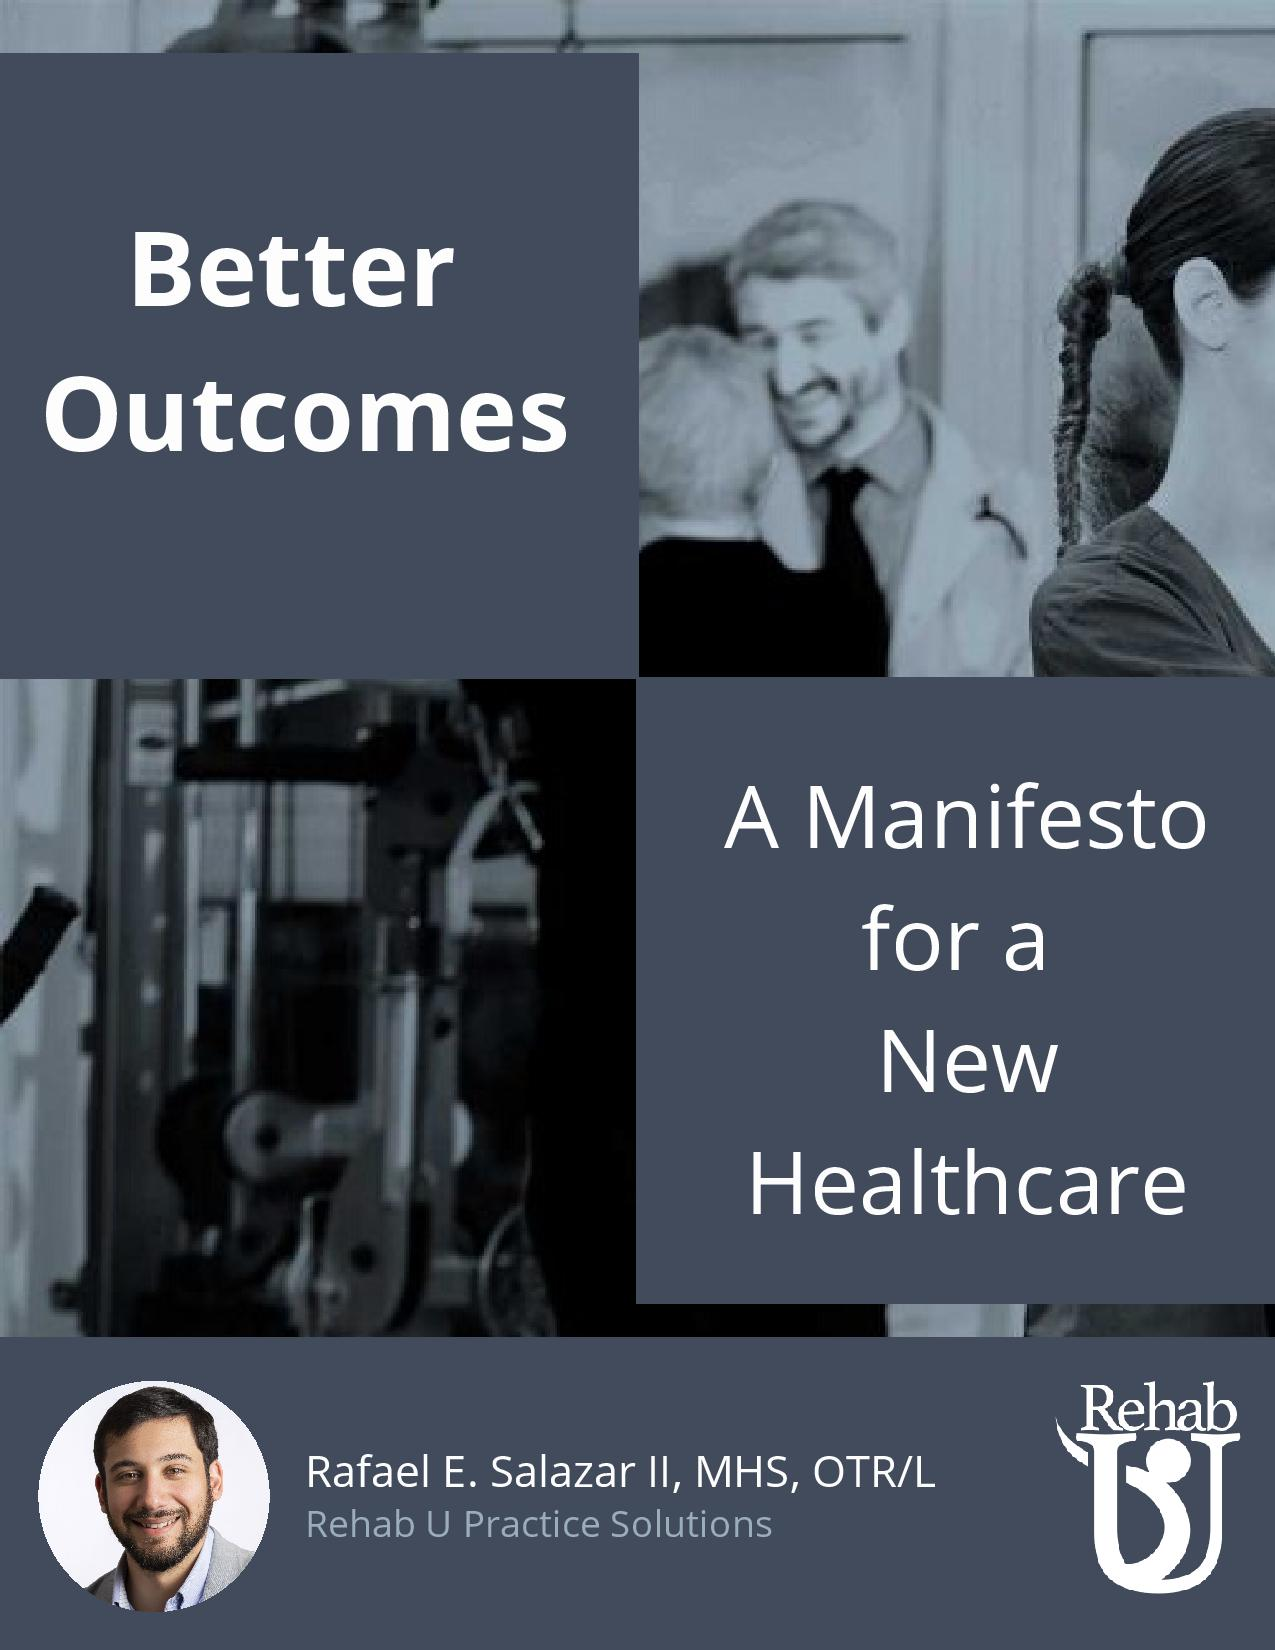 Better Outcomes: A Manifesto for a New Healthcare